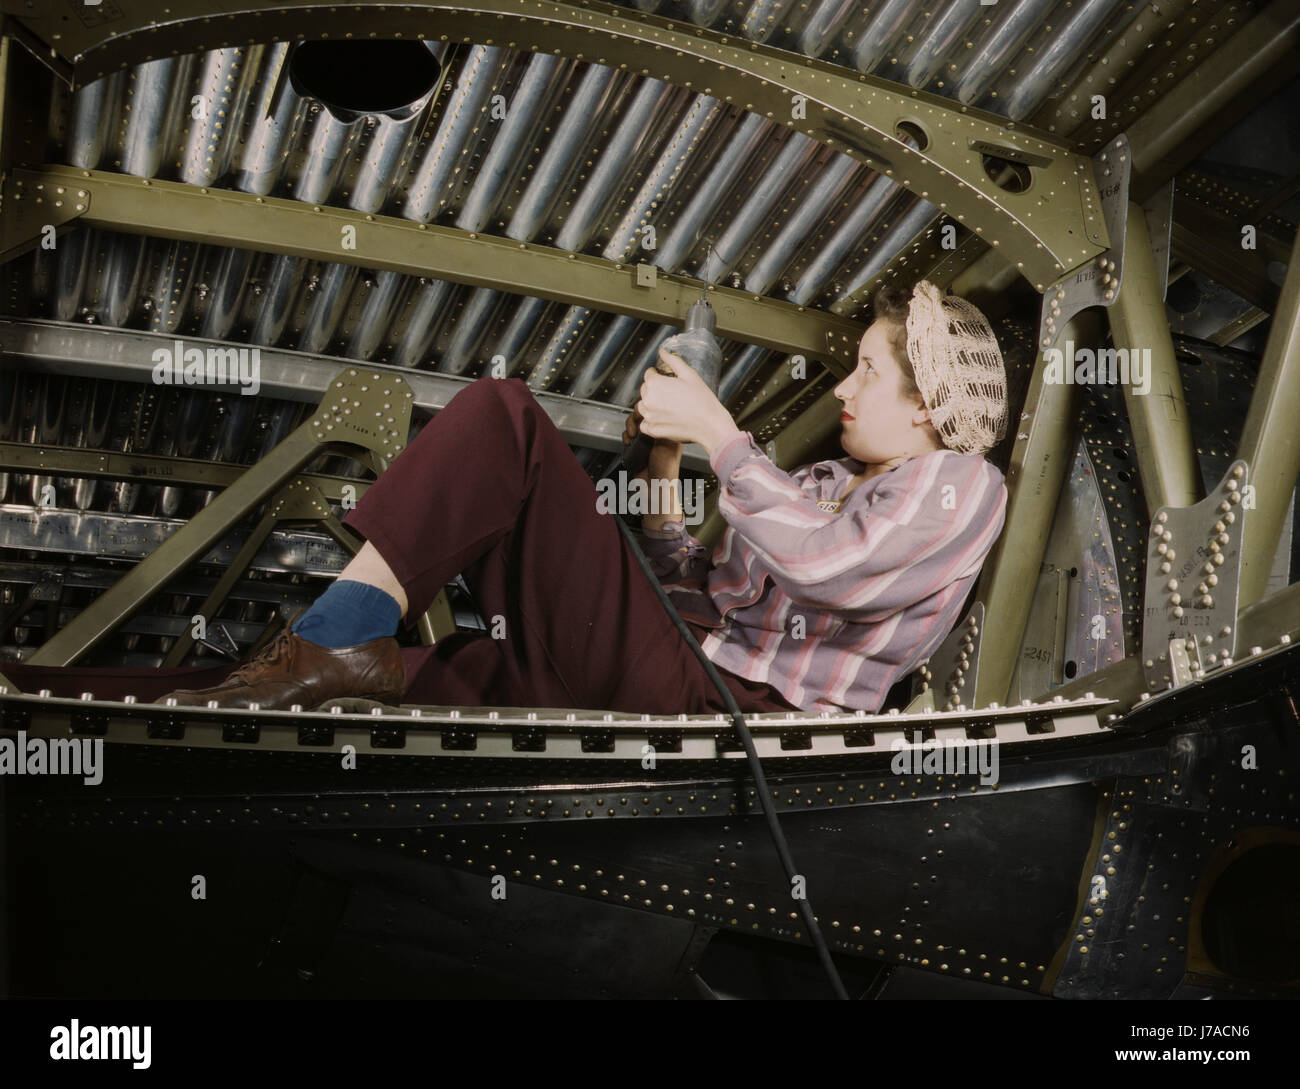 An A-20 bomber being riveted by a woman worker, 1942. - Stock Image